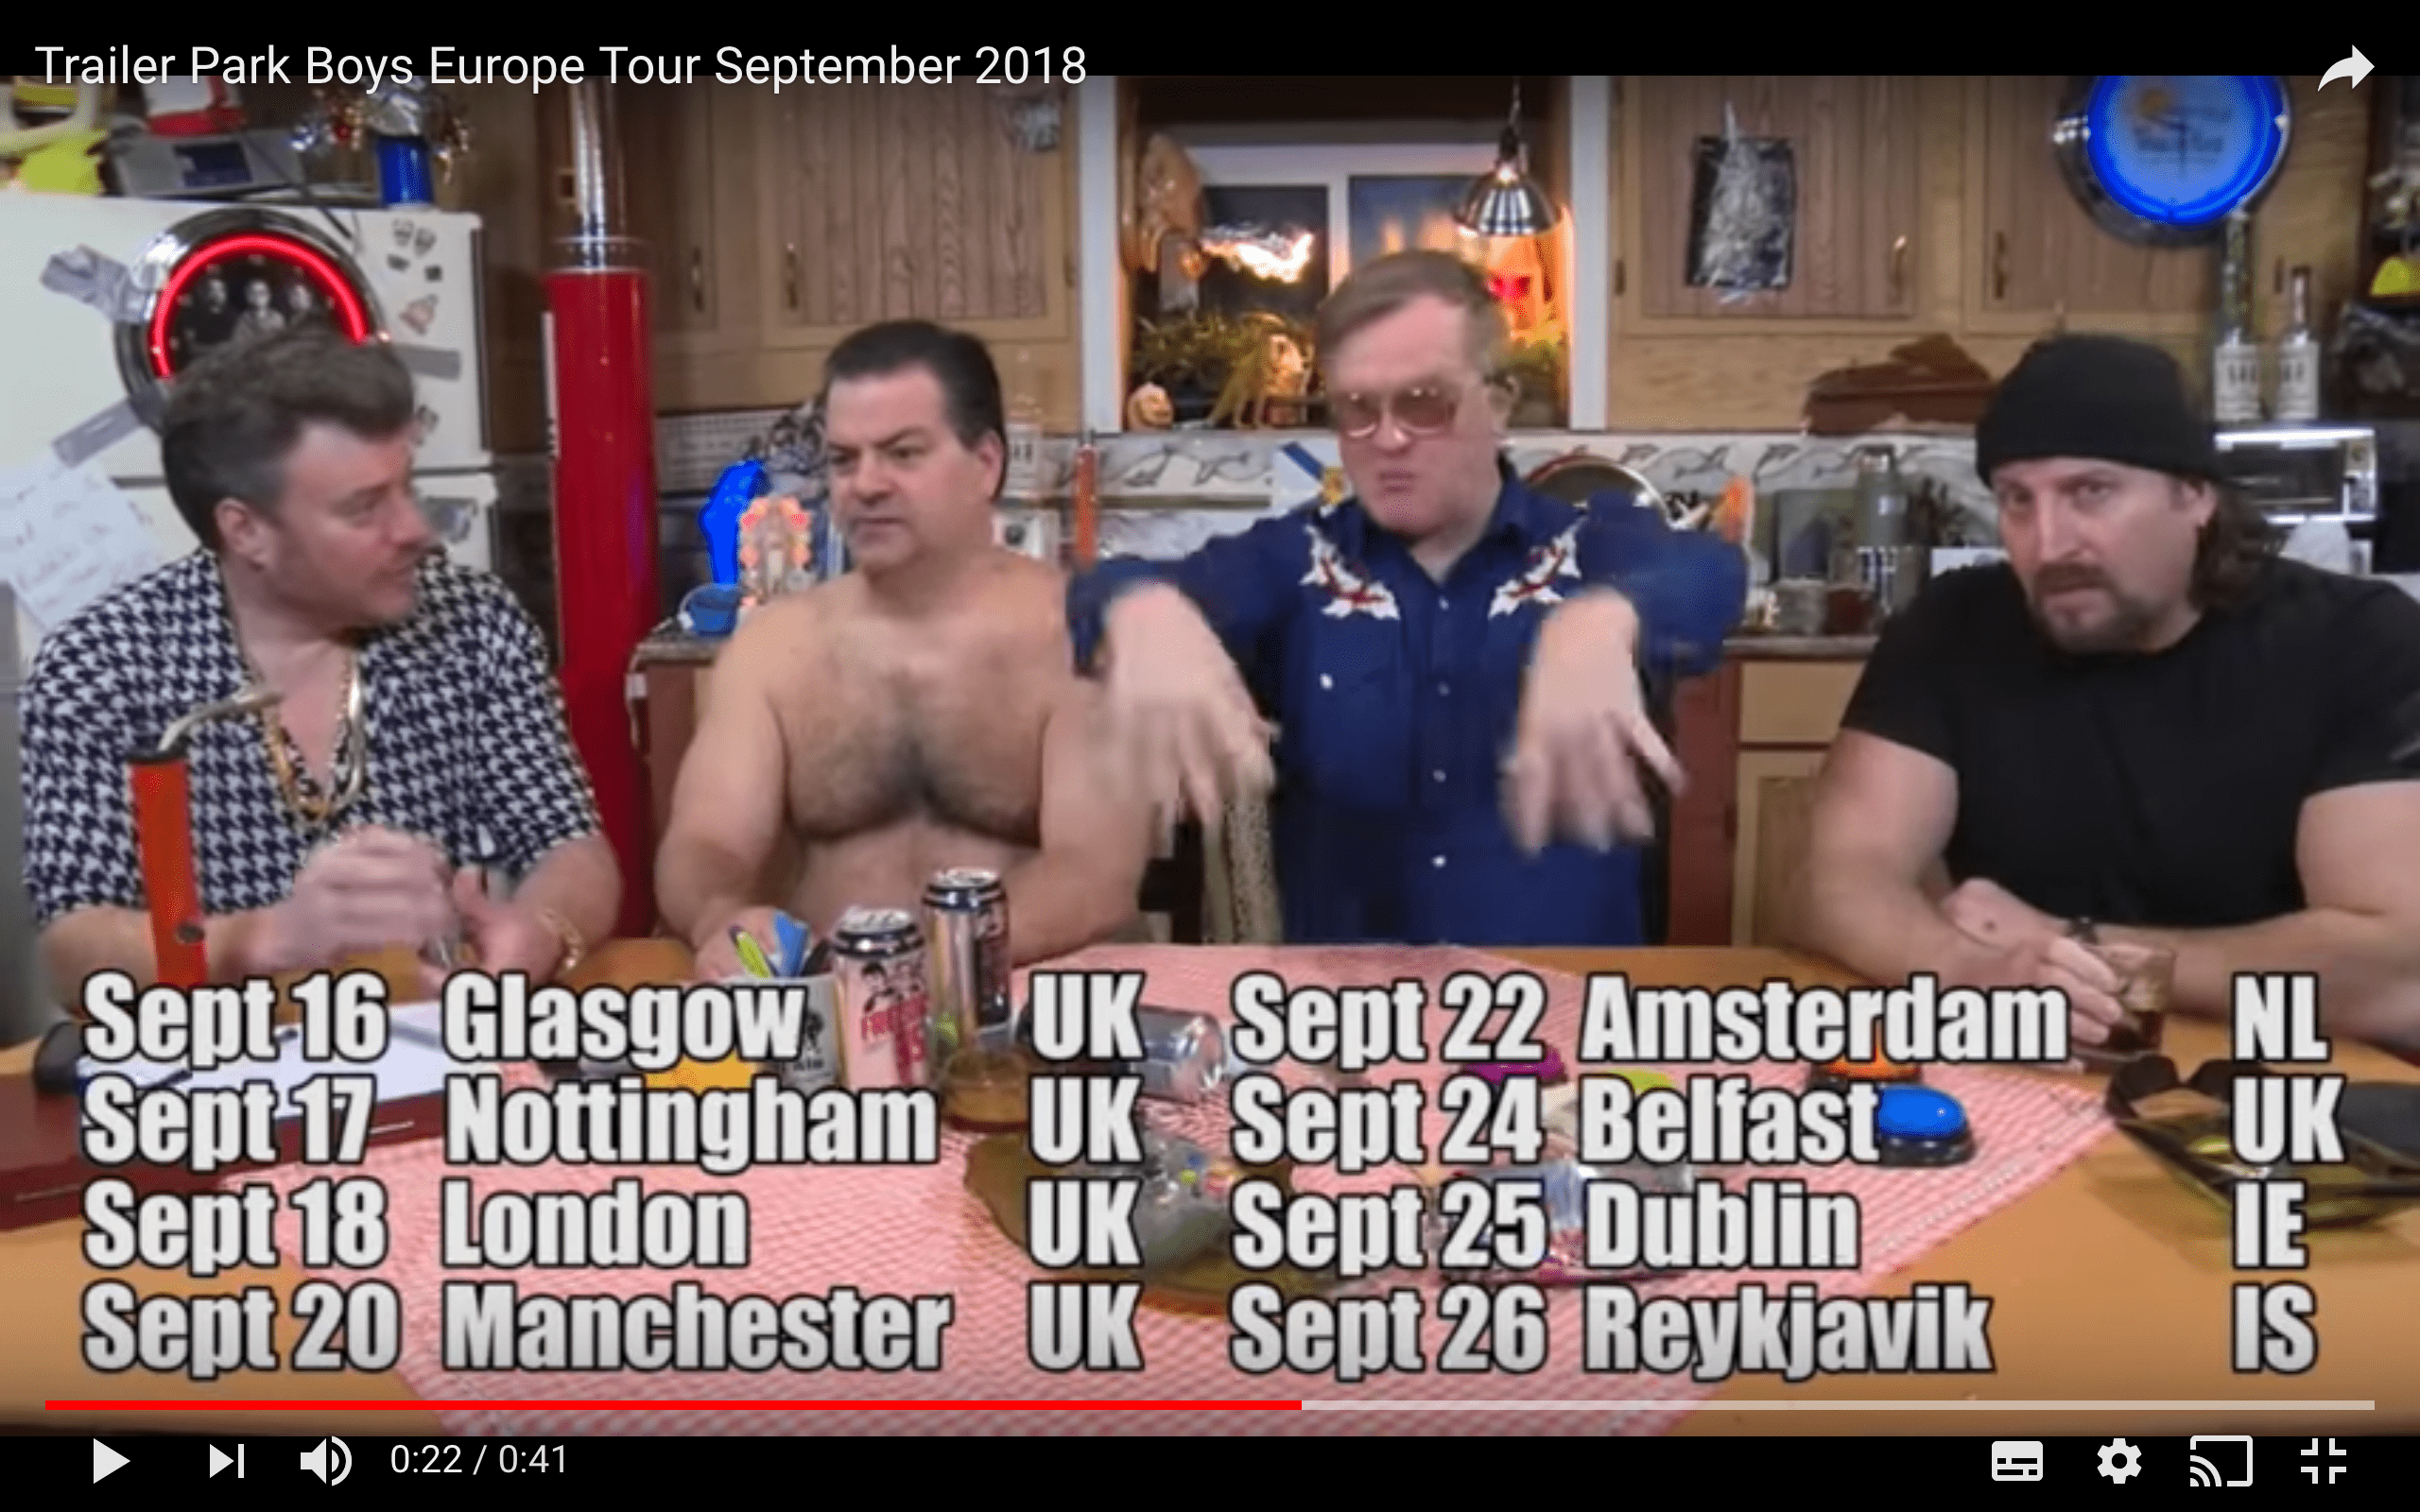 Trailer Park Boys Europe Tour